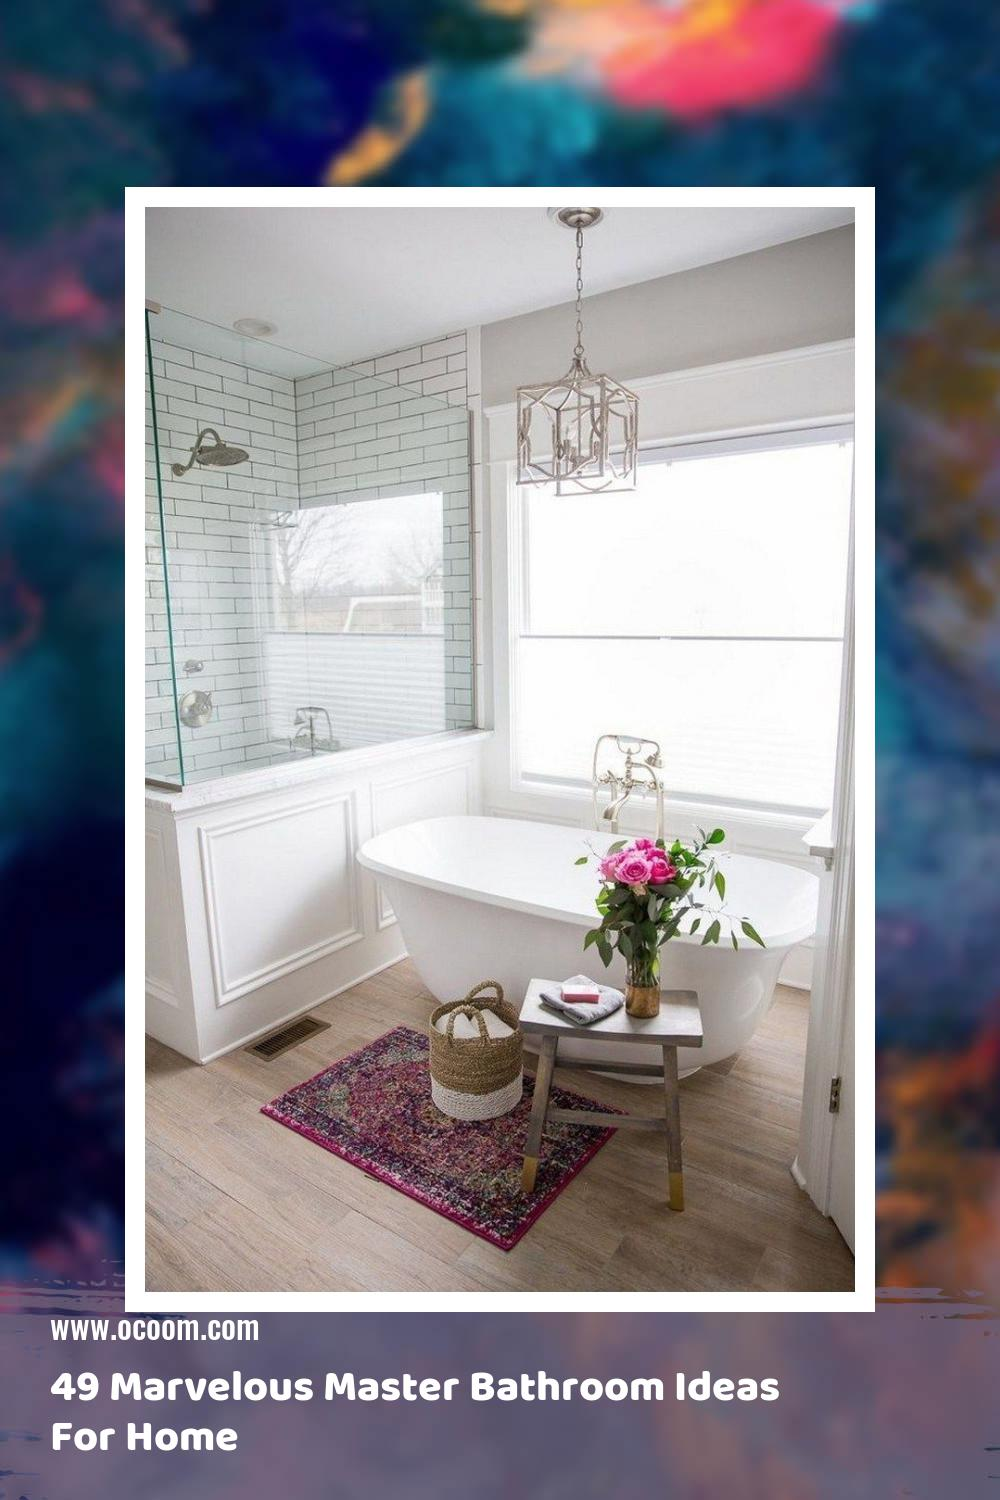 49 Marvelous Master Bathroom Ideas For Home 9